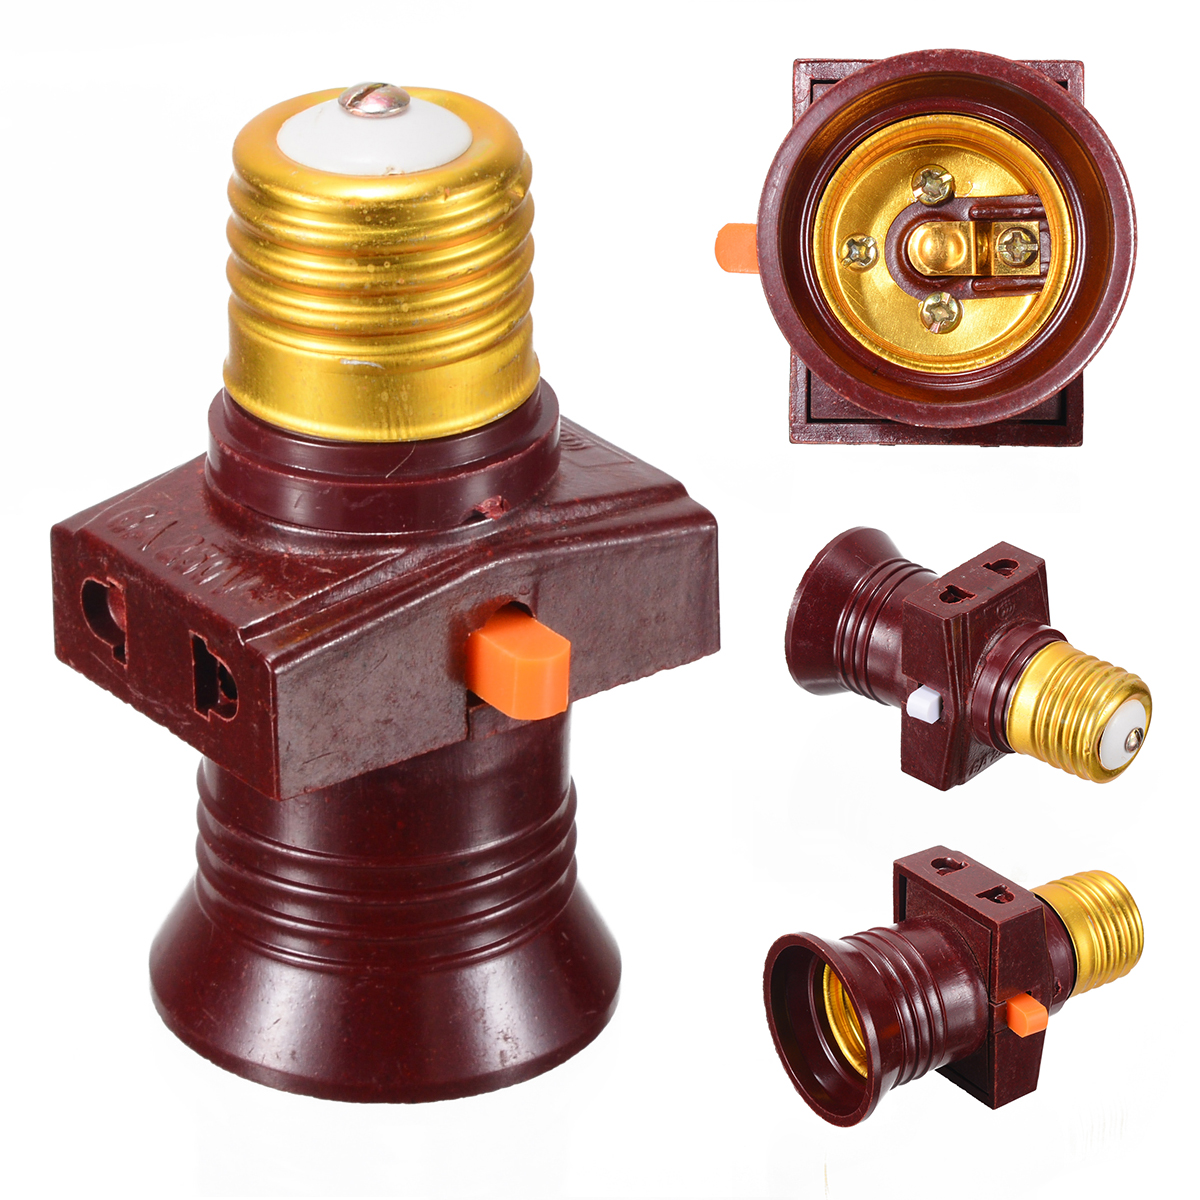 1pc 110-250V E27 Screw Lamp Base Bulb Holder Light Socket Bases With On-off Control Switch Lighting Accessories